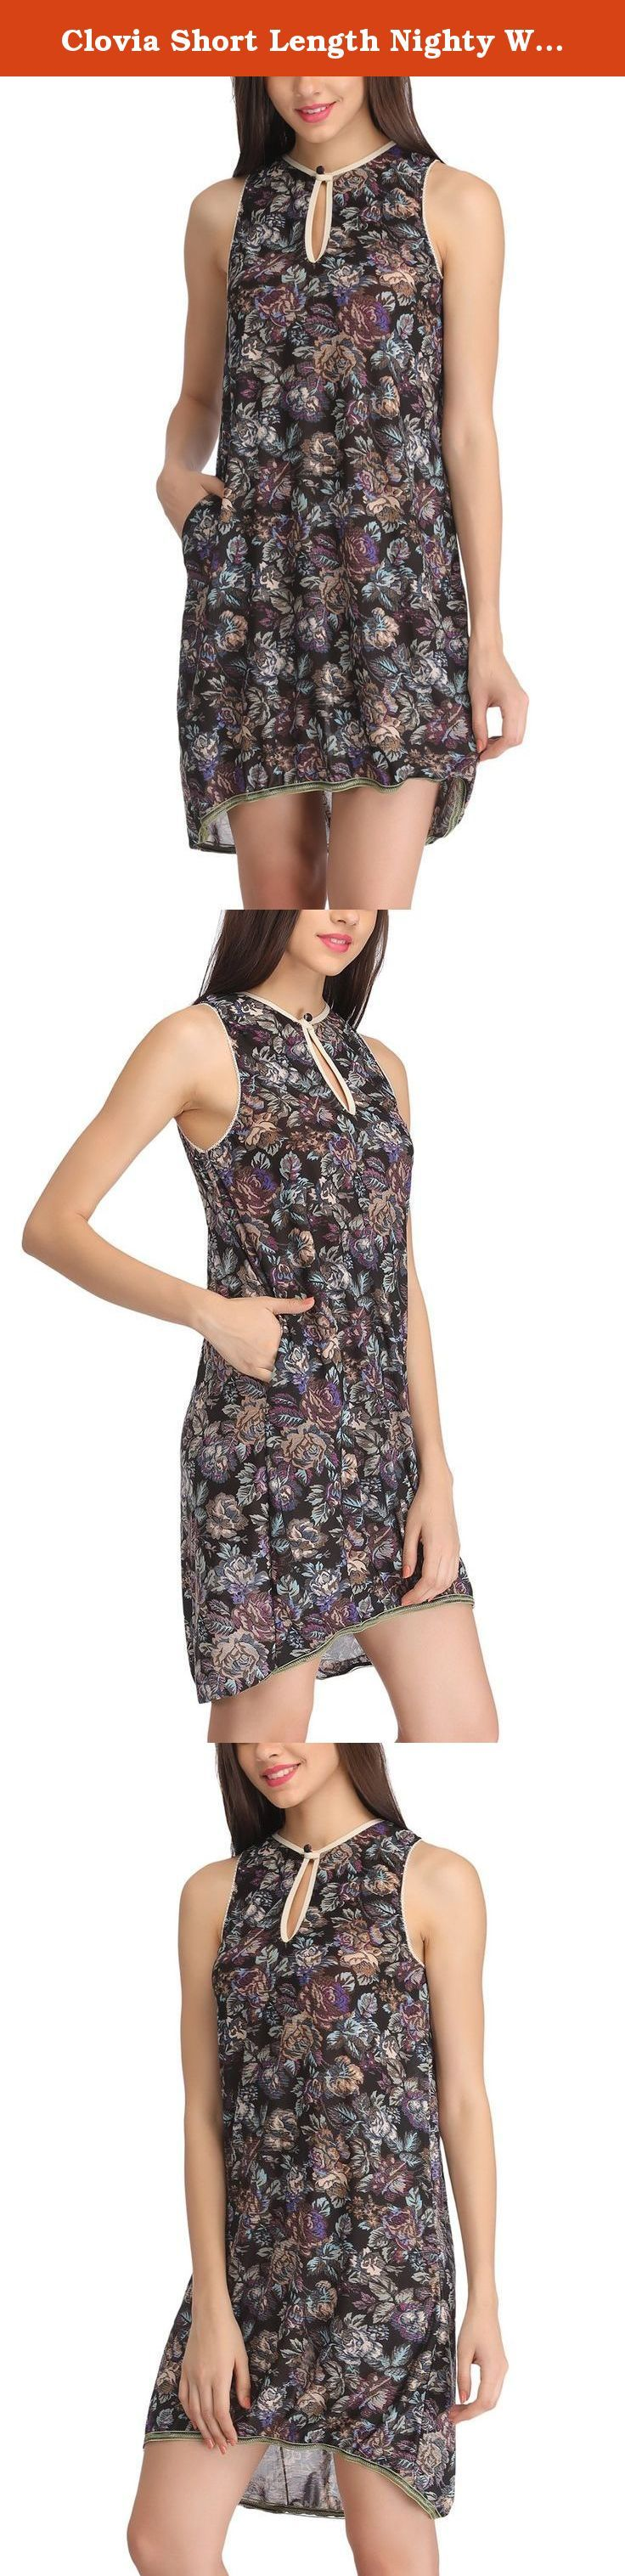 Clovia Short Length Nighty With Designer Lace Trim - Black. Short length printed babydoll dress. Crafted with soft stretchable printed polyamide fabric. Dons designer elastic lace trim at the hem. Further accentuated with key hole neck design with button in front. A cute addition for your nightwear wardrobe or collection of sundresses. Note:- Returns are not acceptable for this Product.